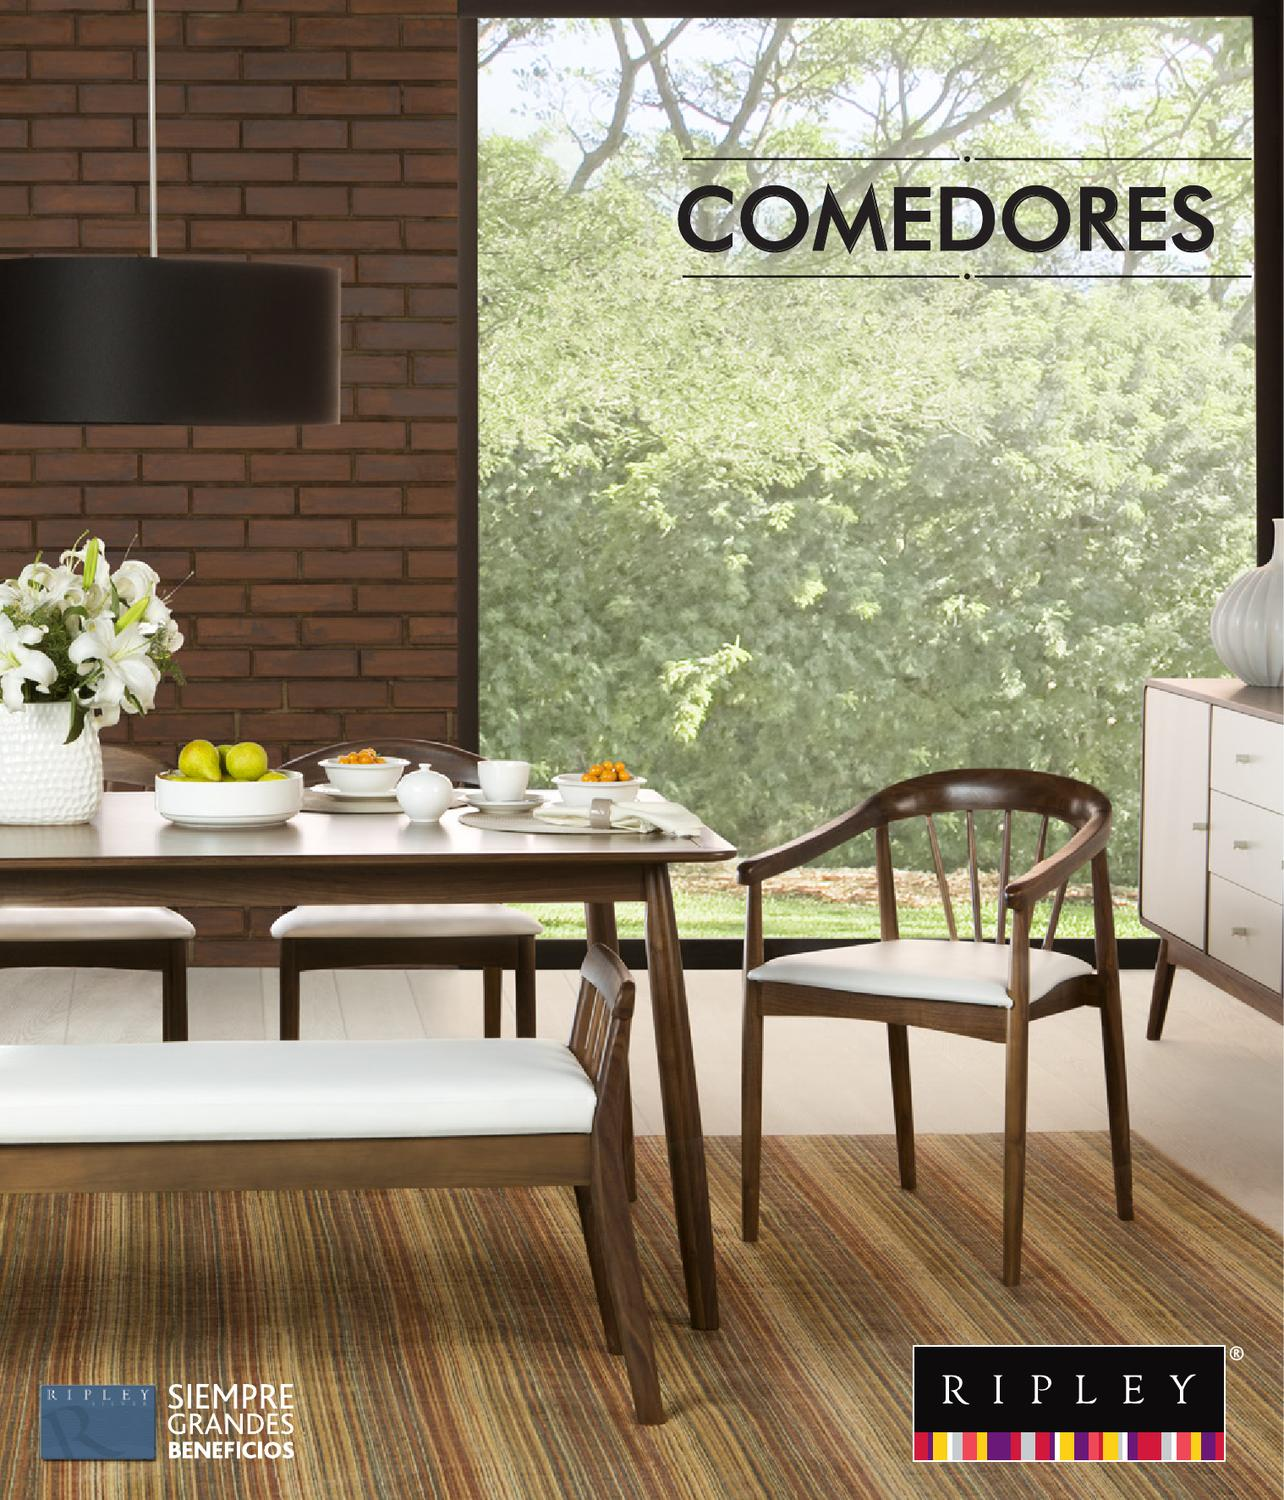 Comedores by ripley peru issuu for Ofertas comedores ripley